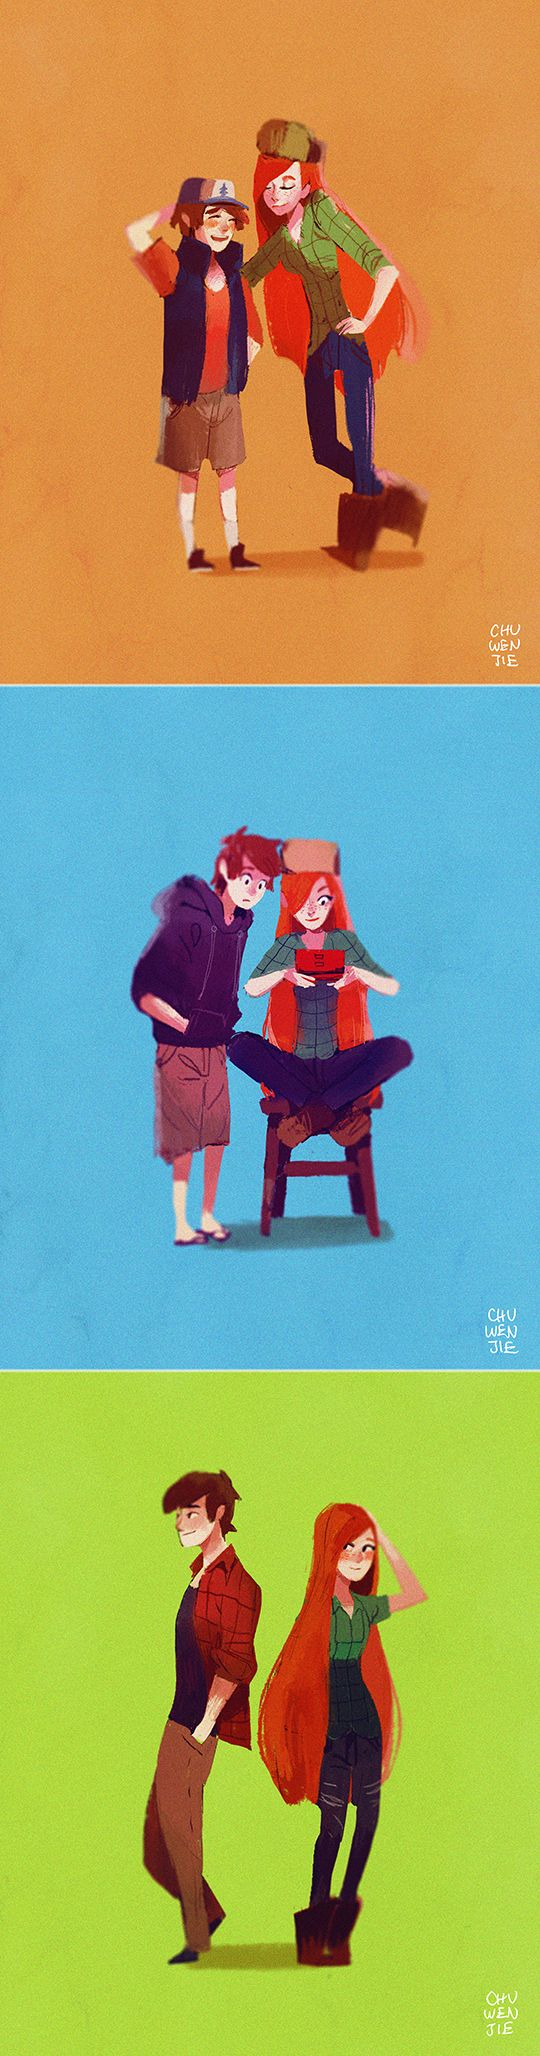 dipper x wendy by chuwenjie.deviantart.com on @DeviantArt